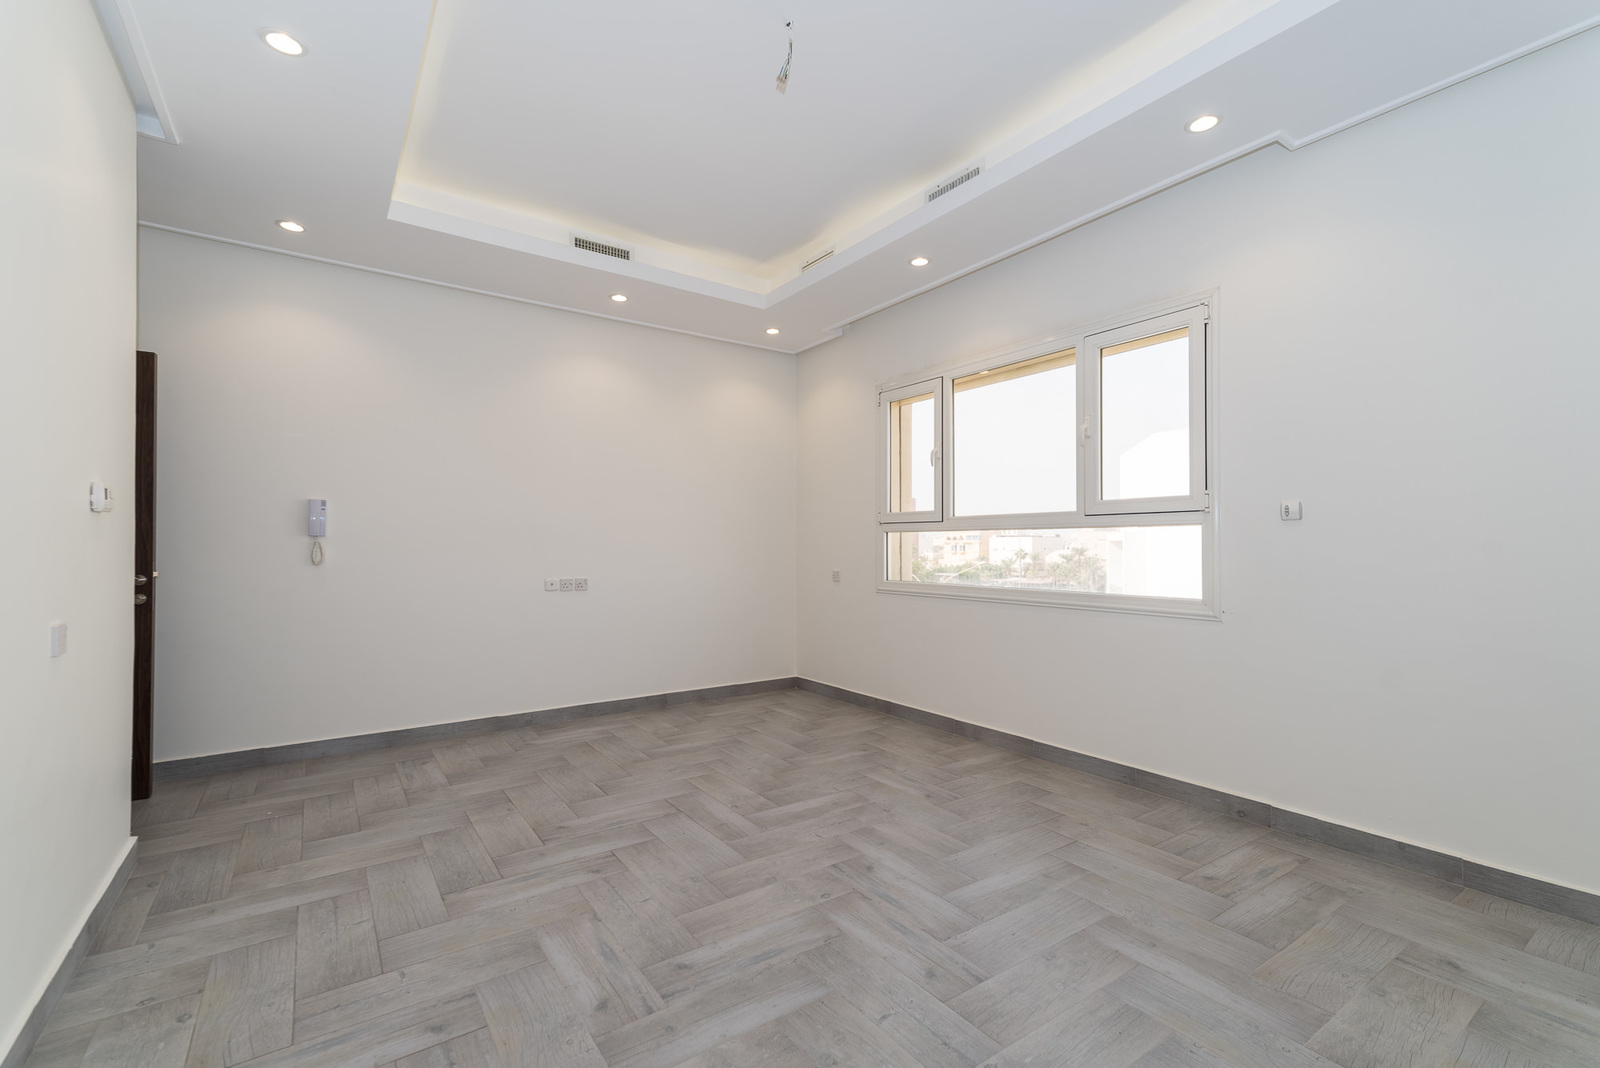 Salwa – great, unfurnished, two bedroom apartment